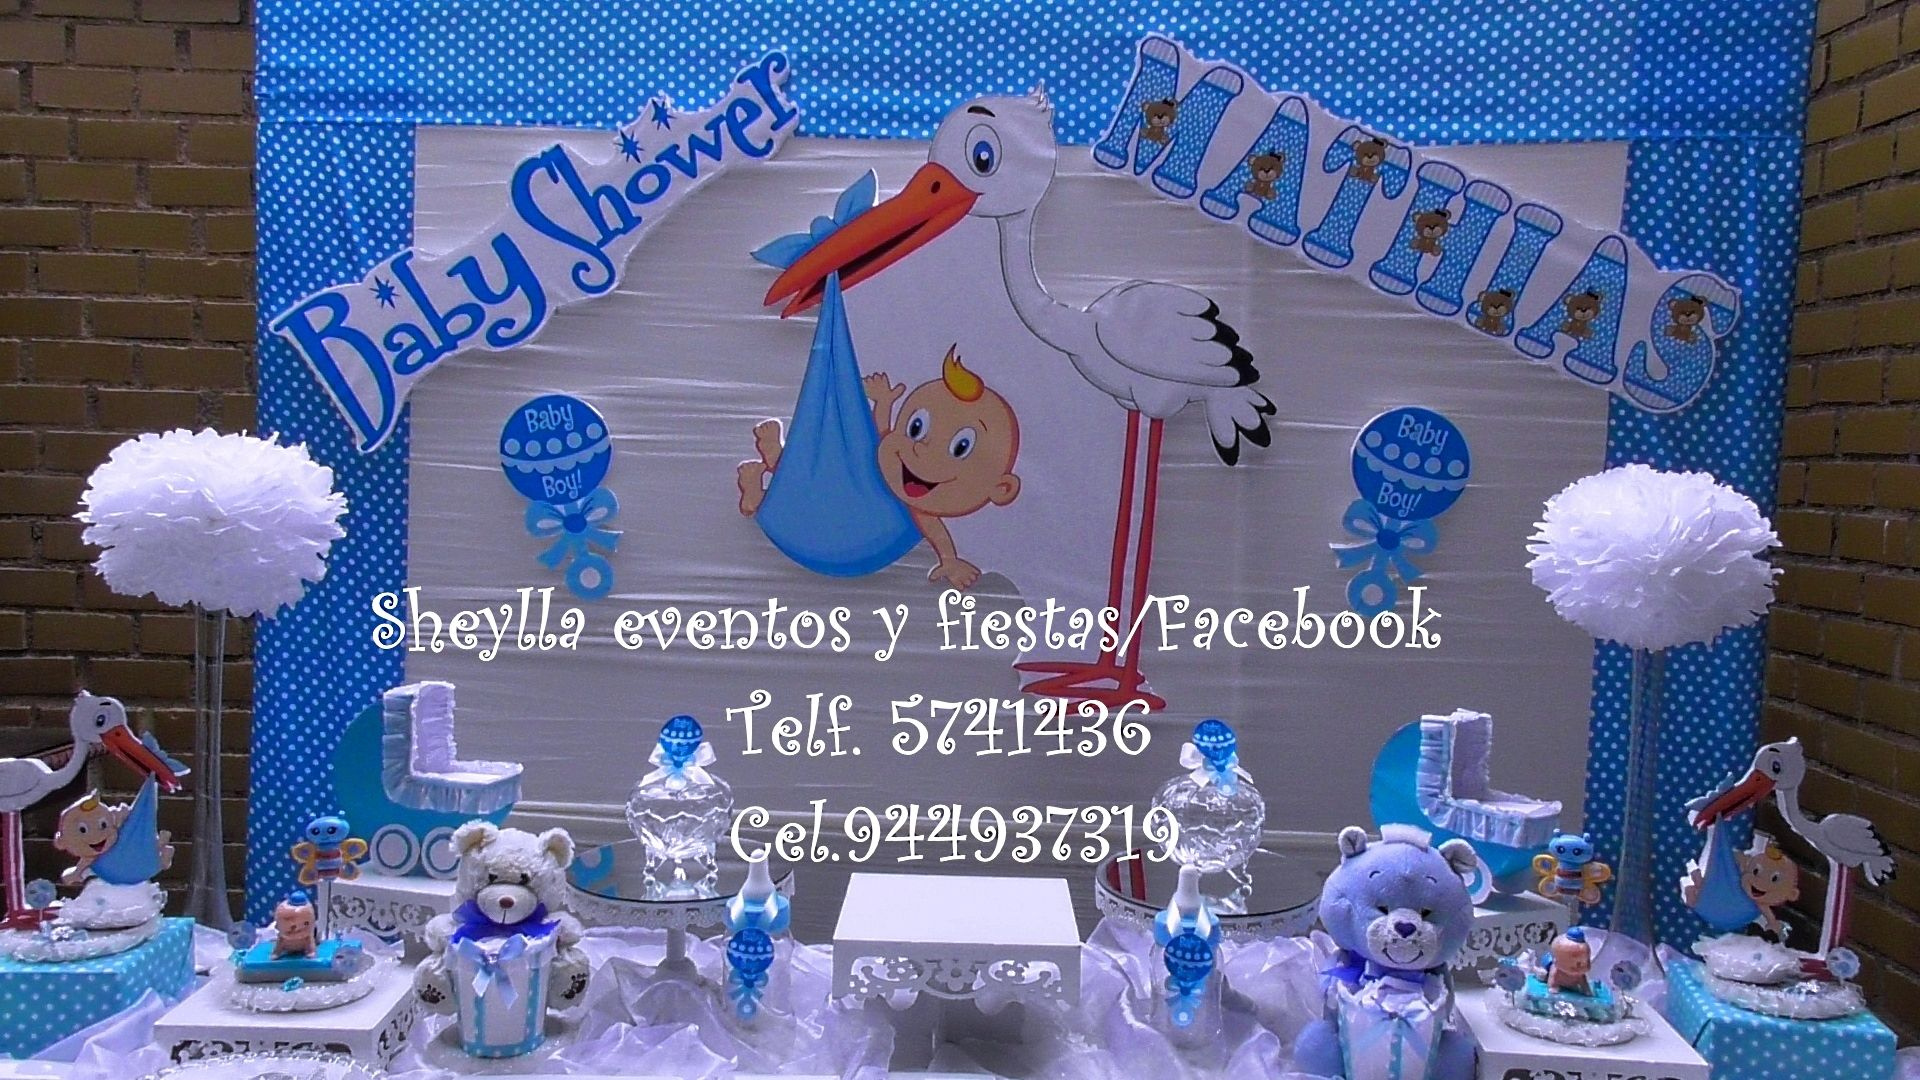 Decoracion baby shower ni o baby shower bautizo - Baby shower decoracion ...